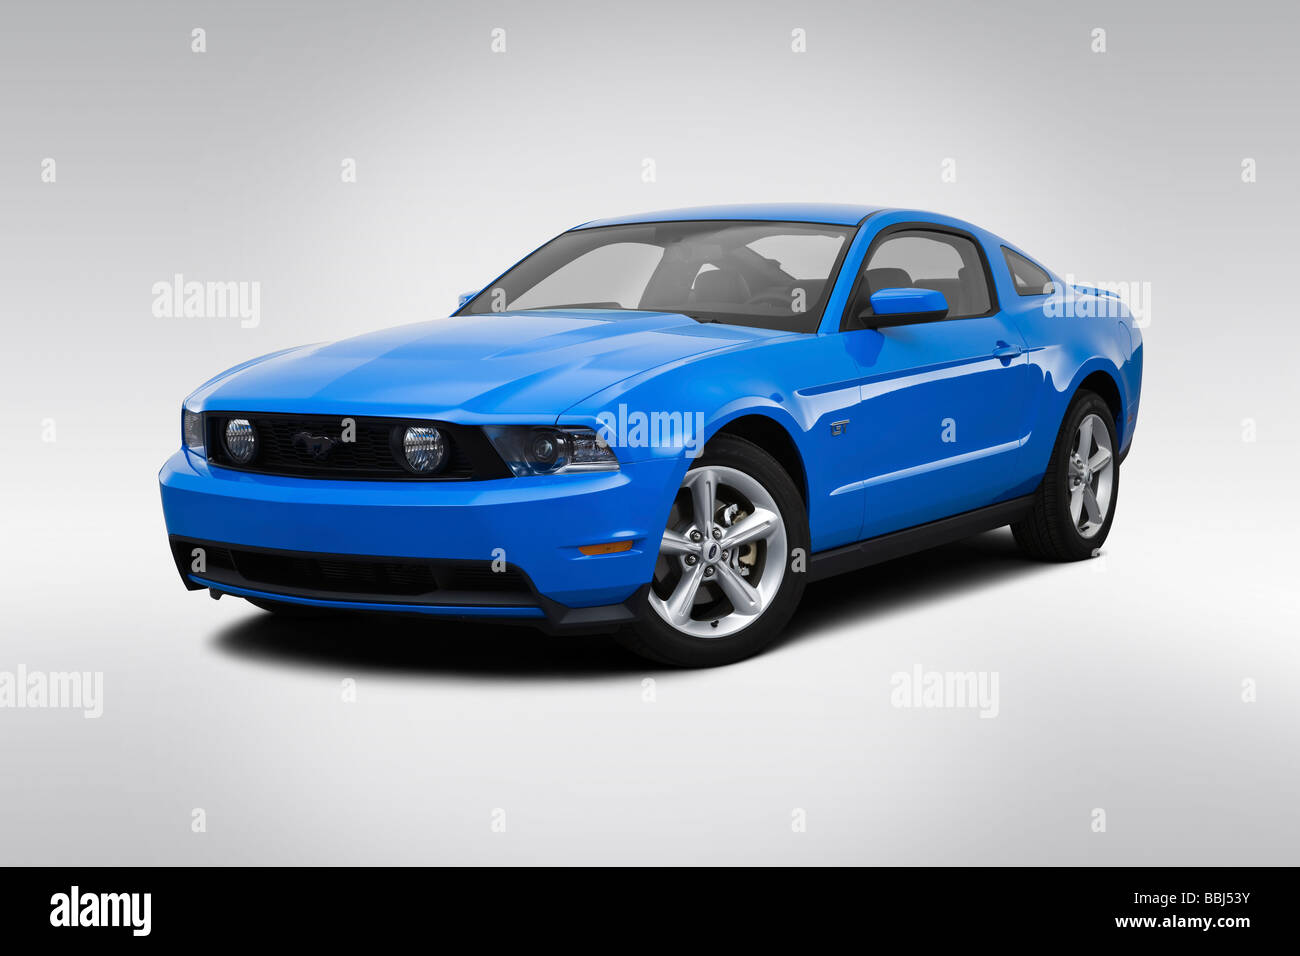 Ford Mustang Gt Premium In Blue Front Angle View Stock Image